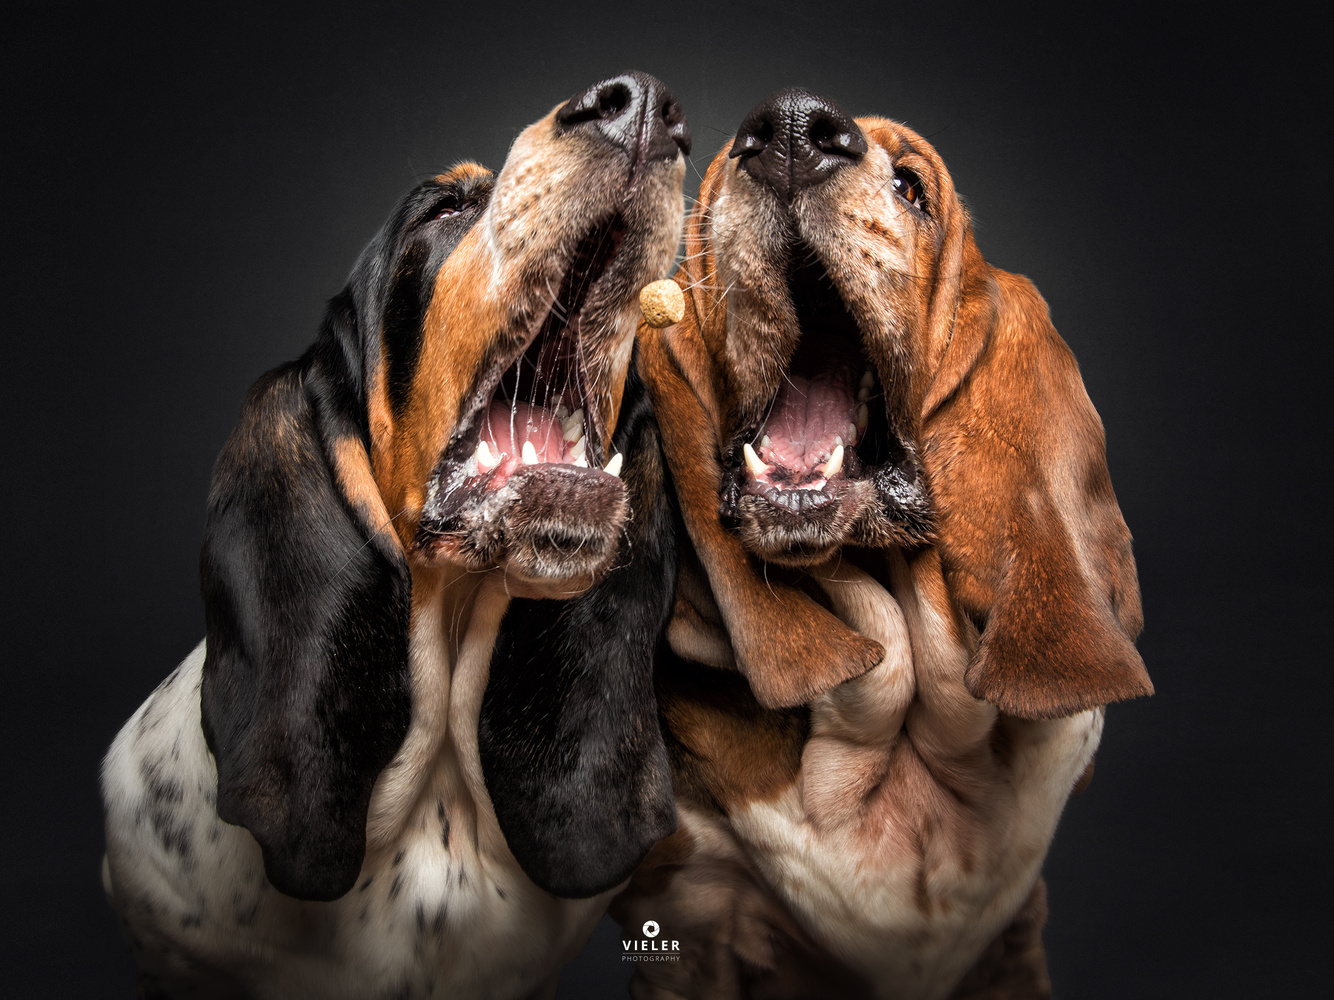 The Tenors - two Basset Hounds by Christian Vieler